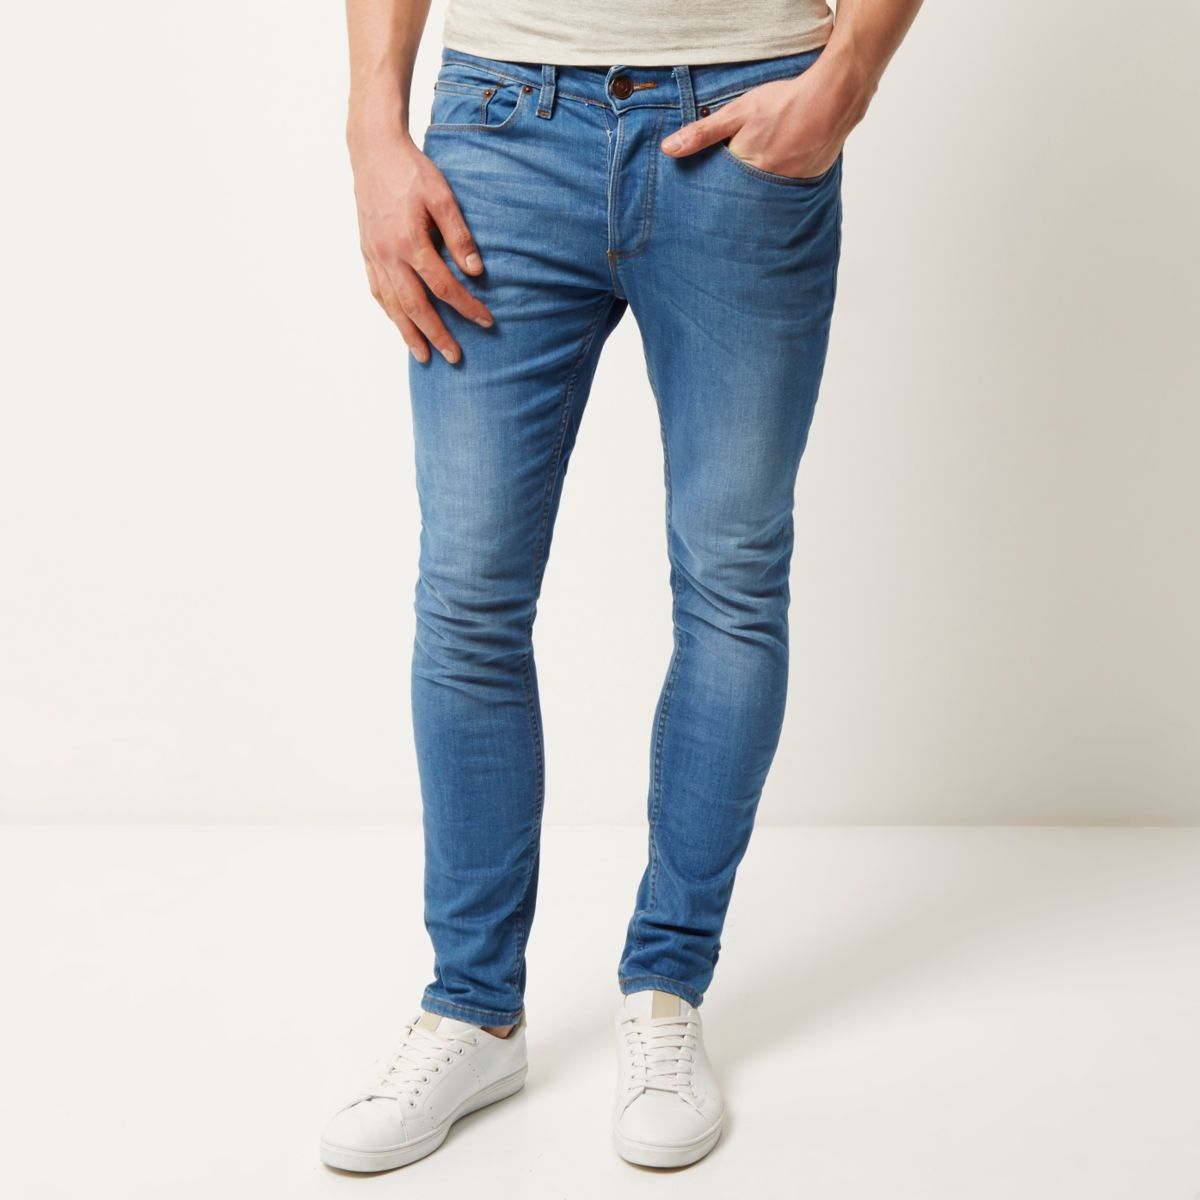 Find great deals on eBay for skinny stretch jeans. Shop with confidence.